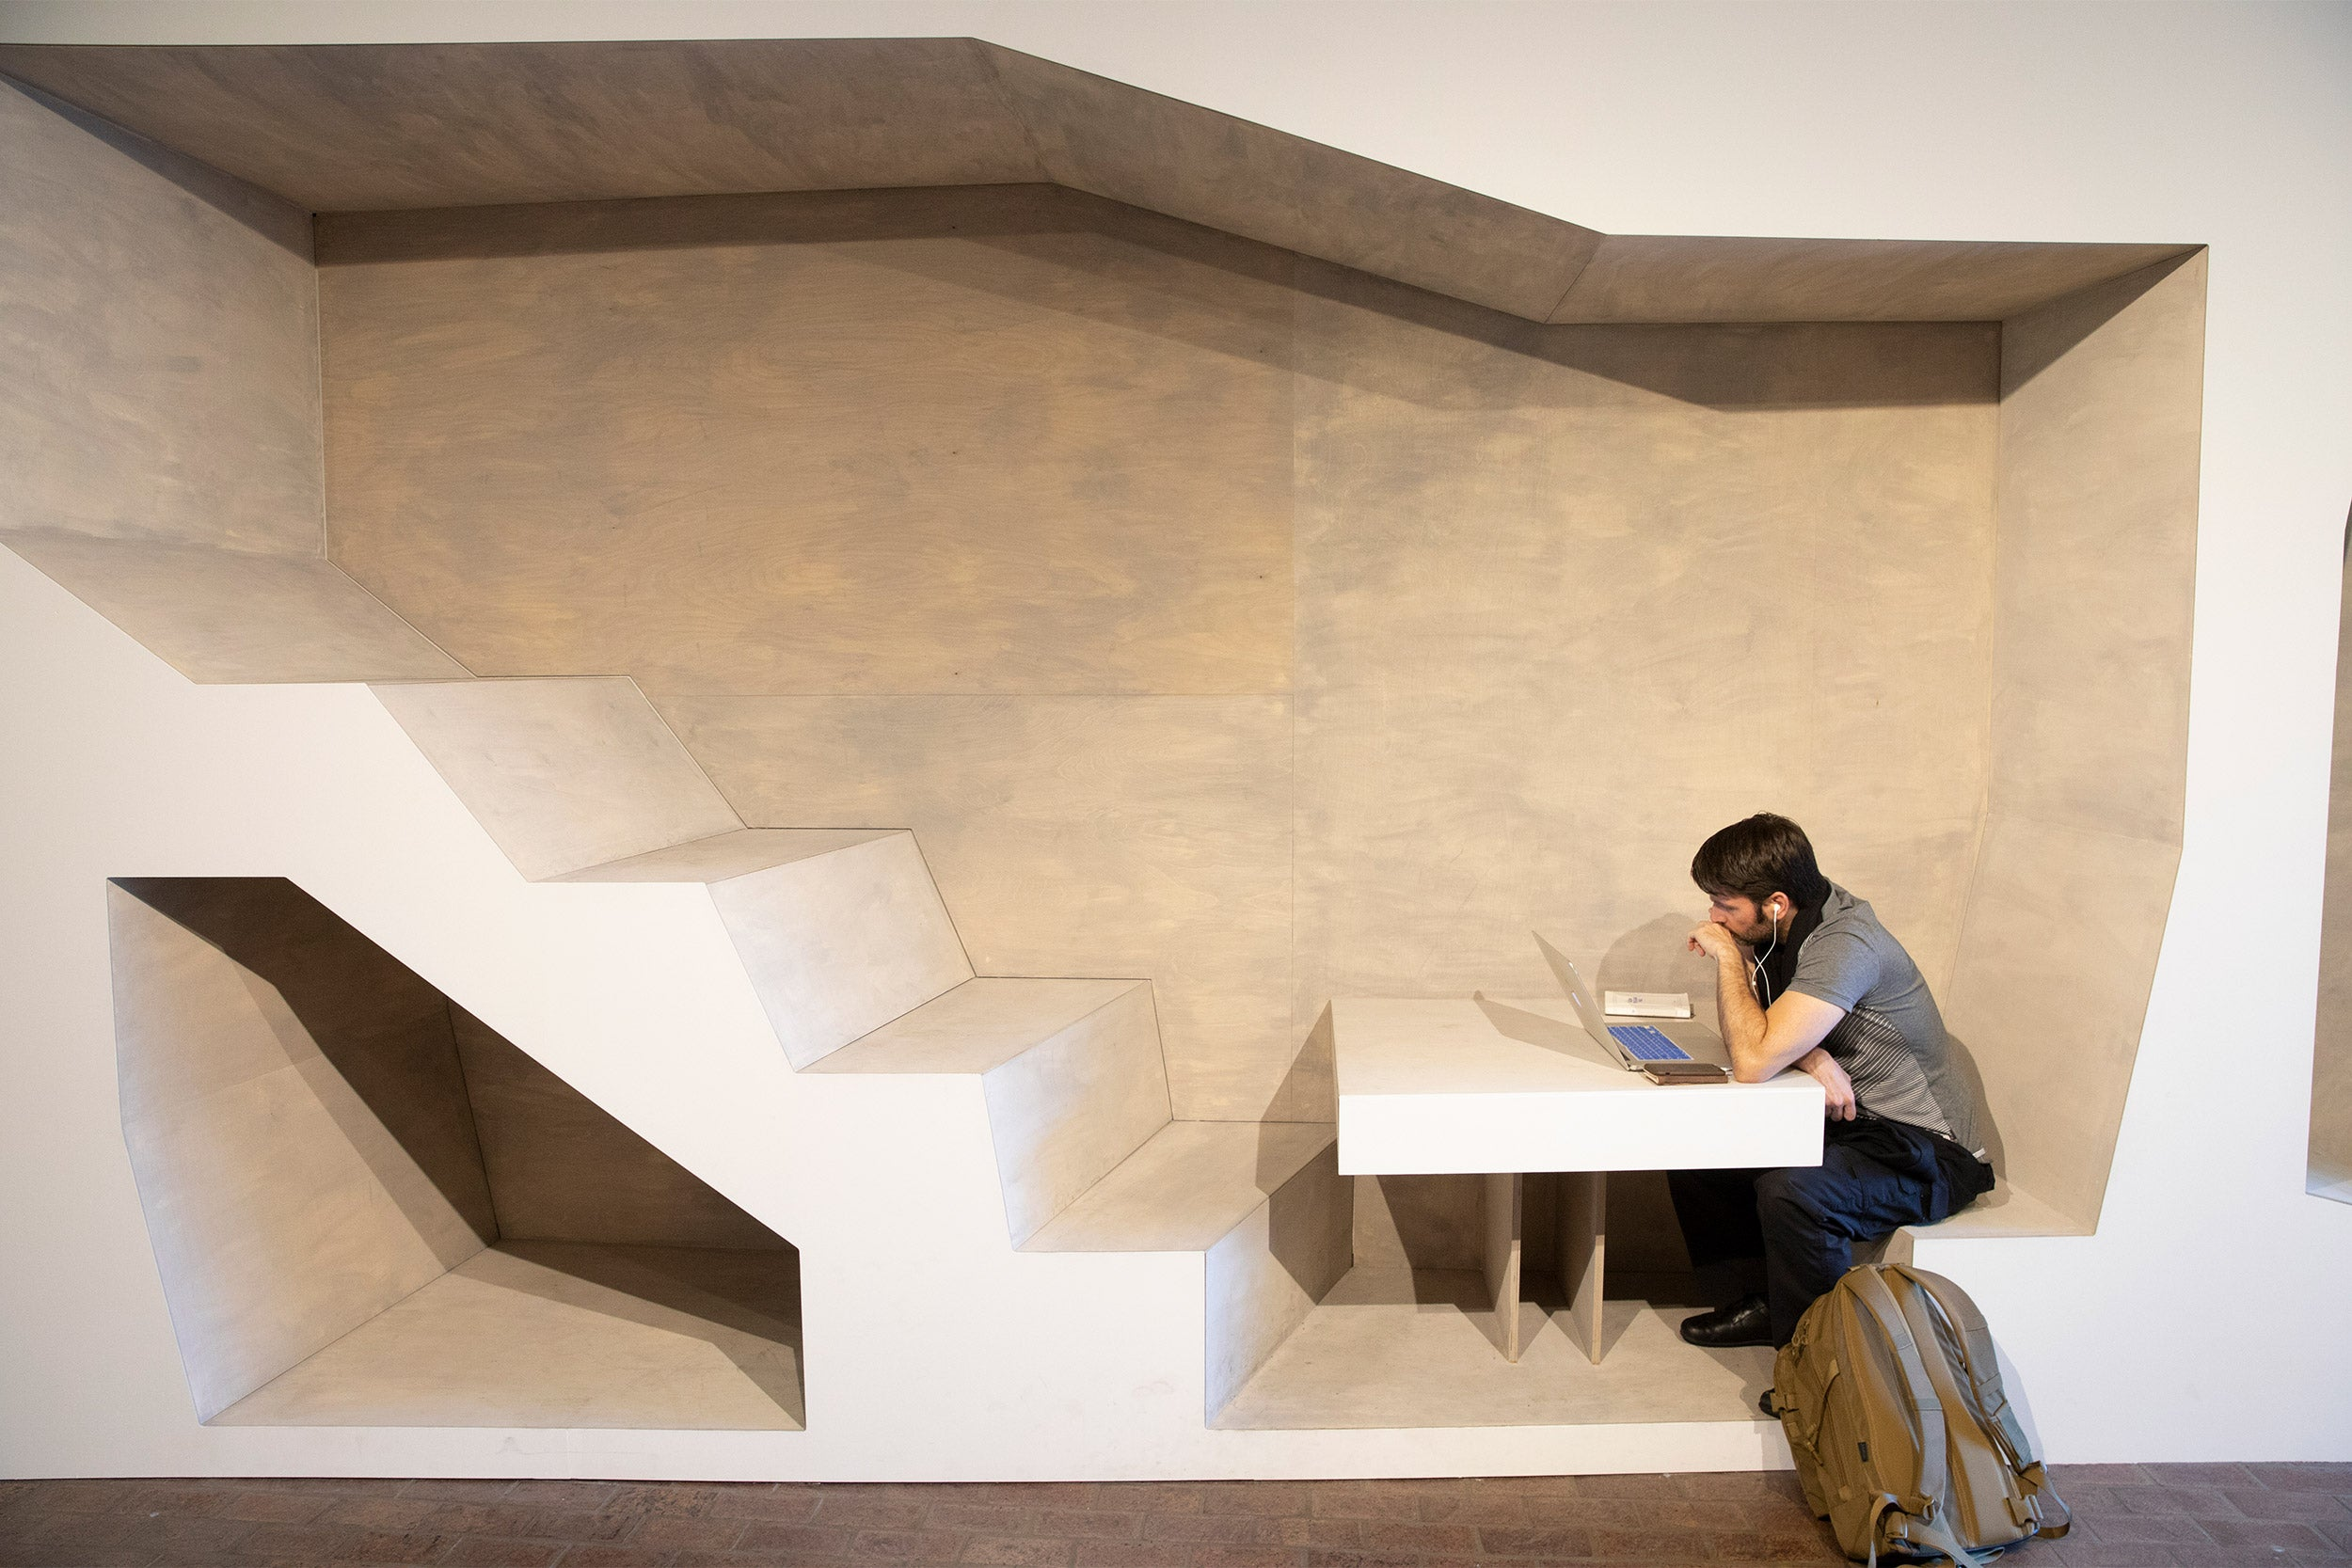 Study space in GSD exhibit